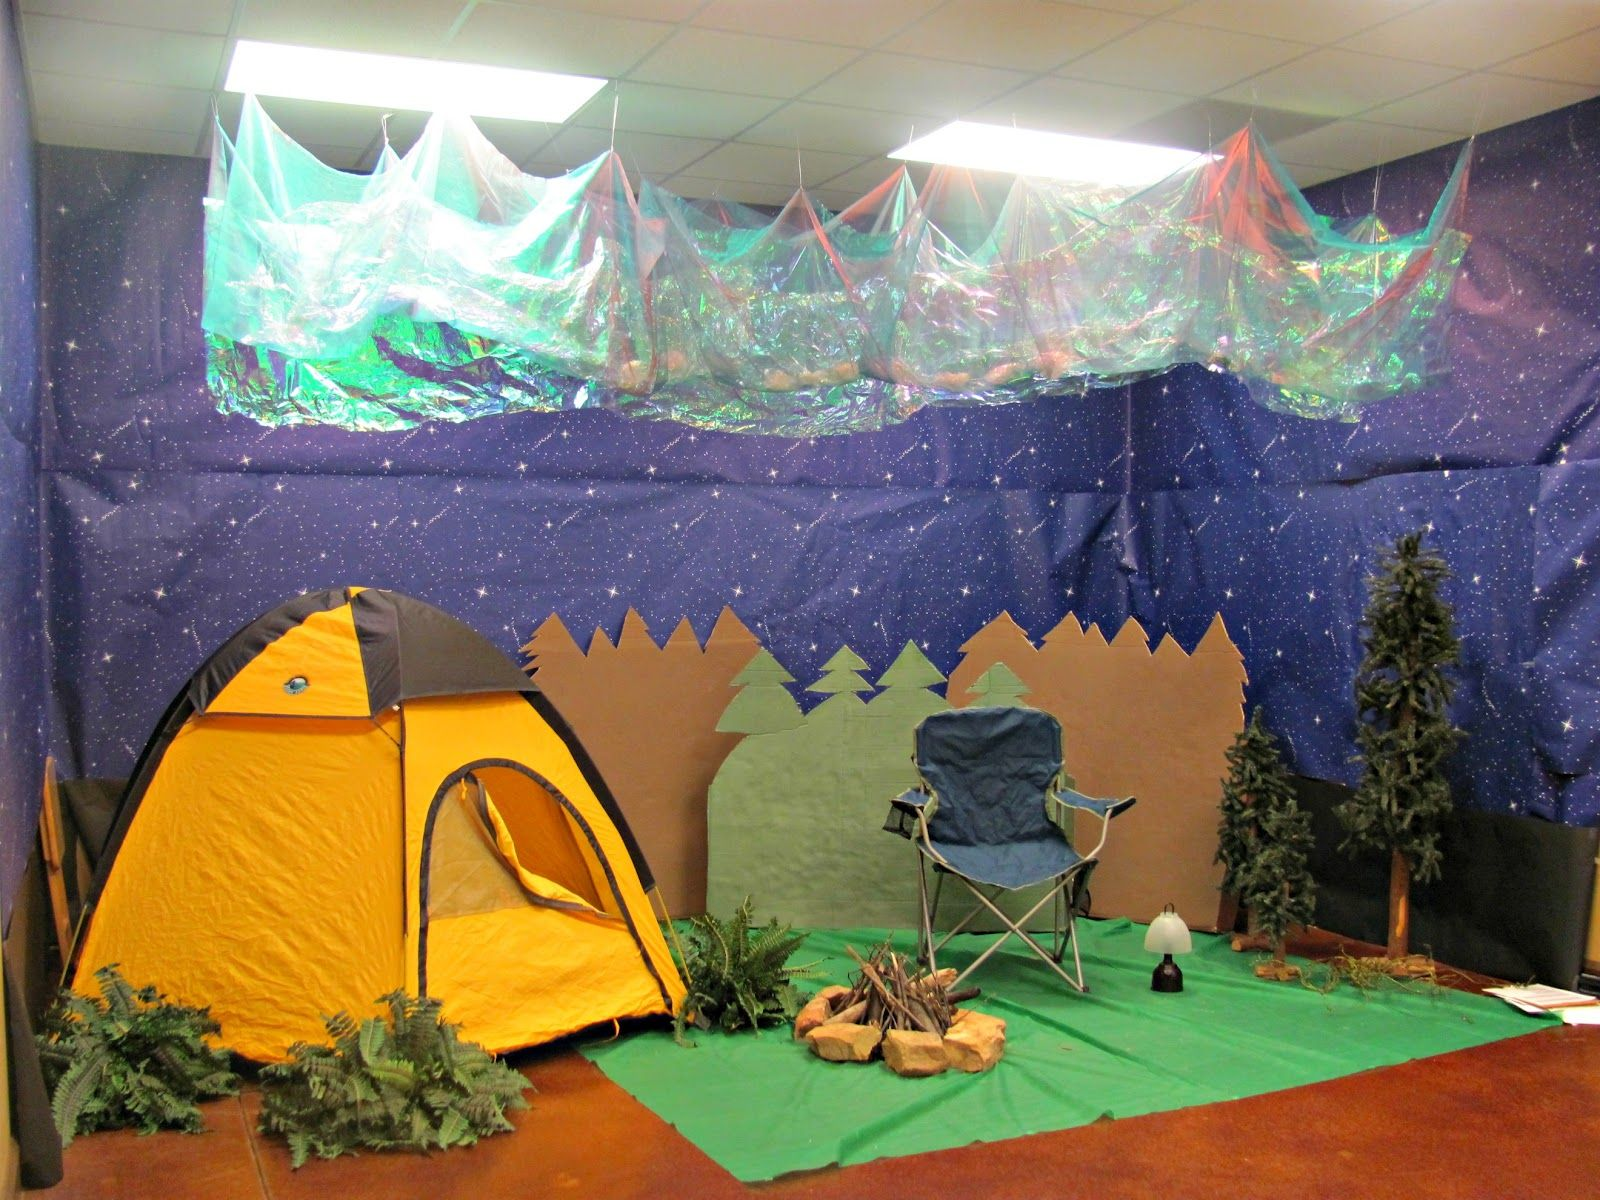 vbs 17 decorating ideas  The Northern Lights room for